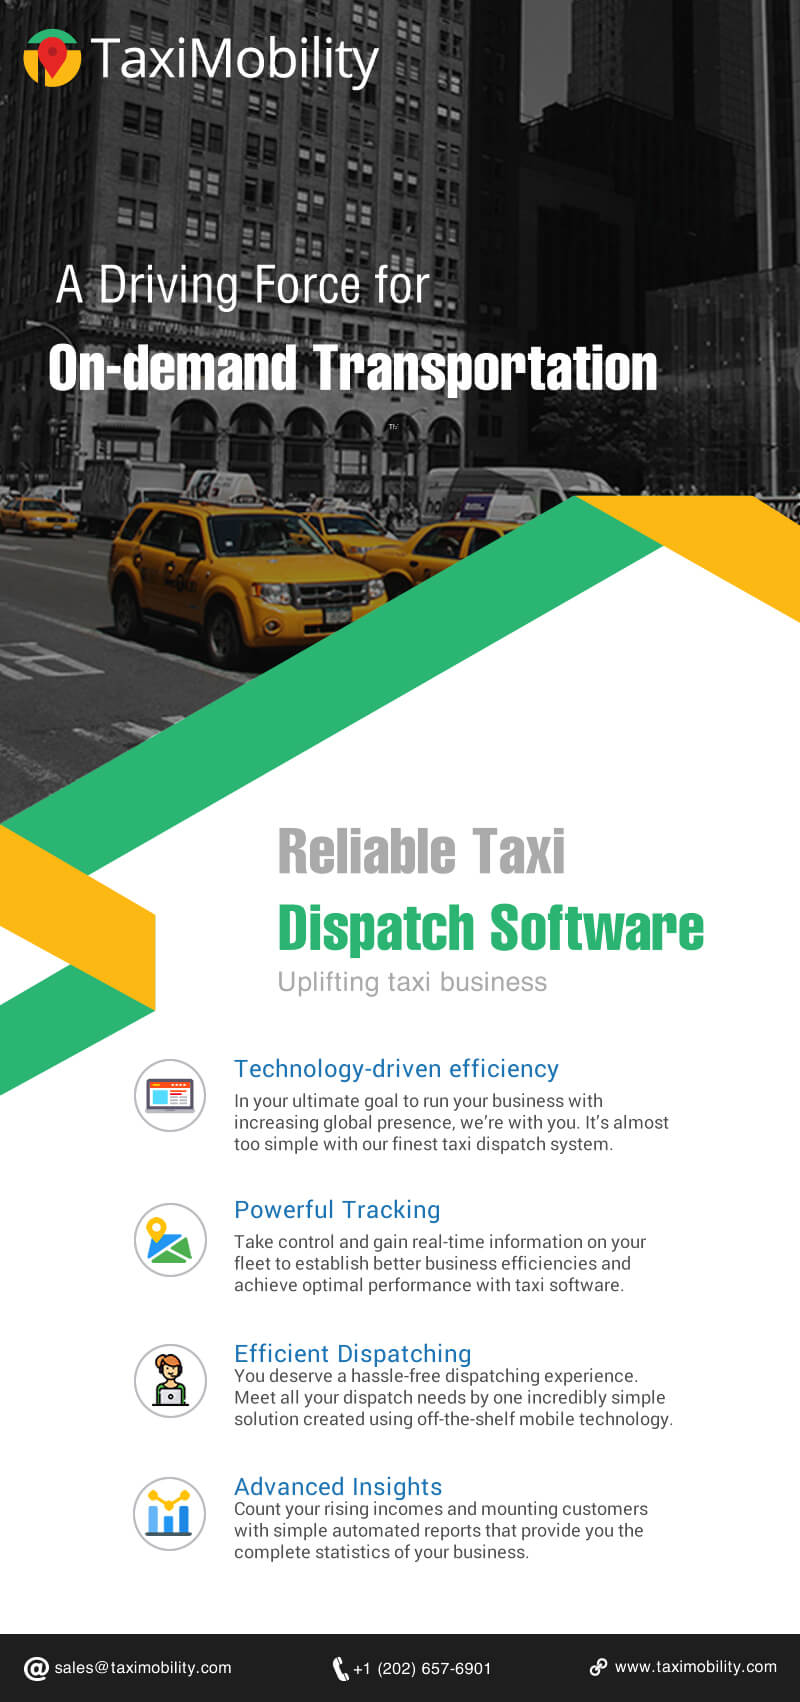 A driving force for on-demand taxi business